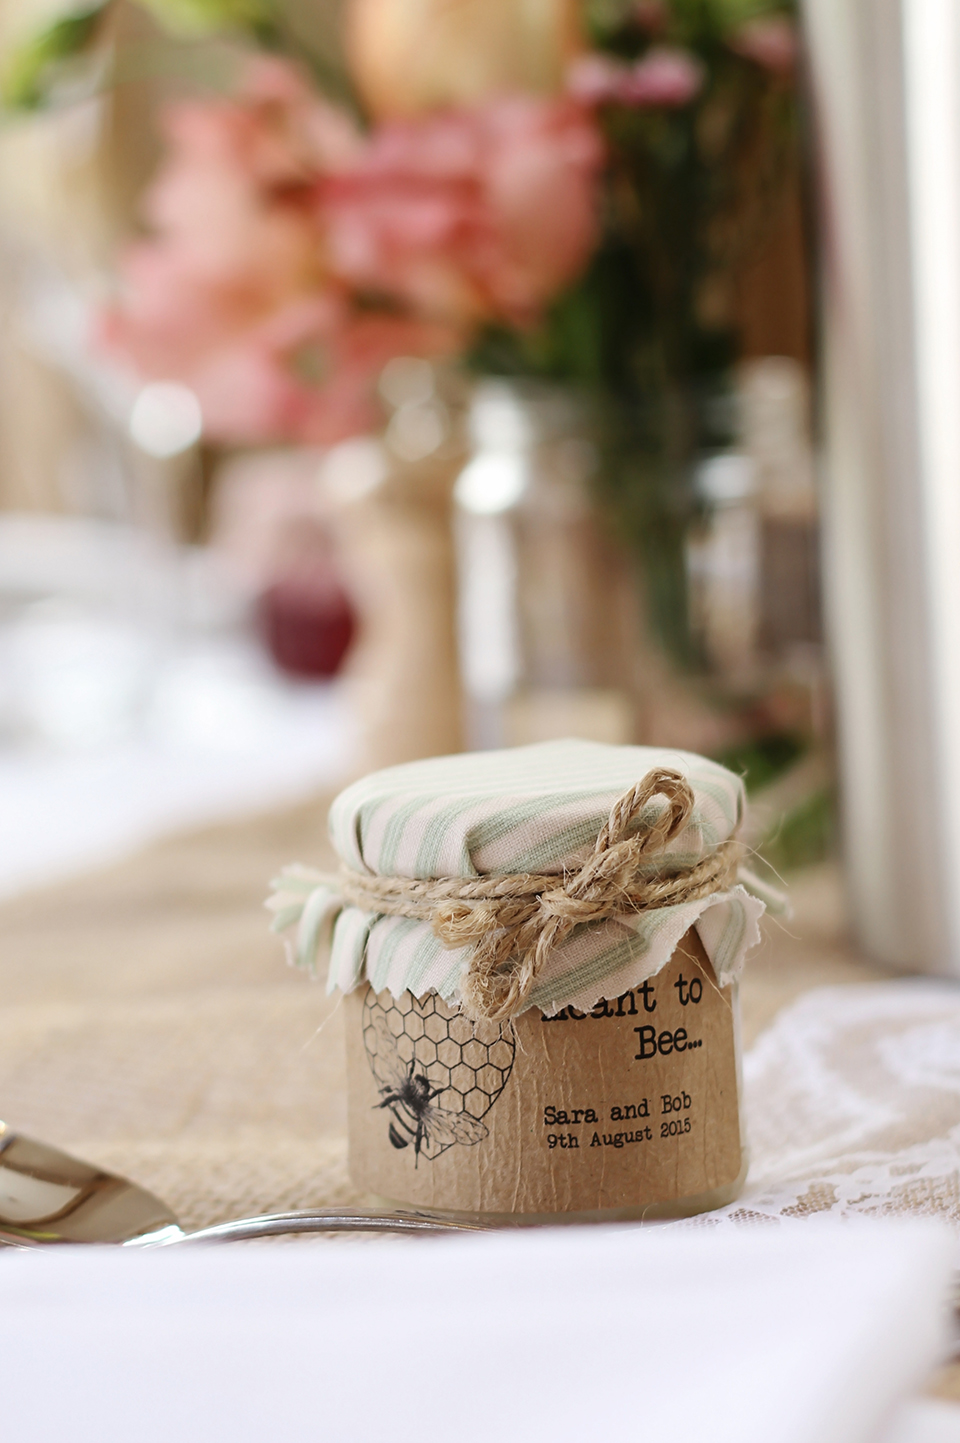 For their wedding favours at Bassmead Manor Barns a couple gave their guests pots of honey